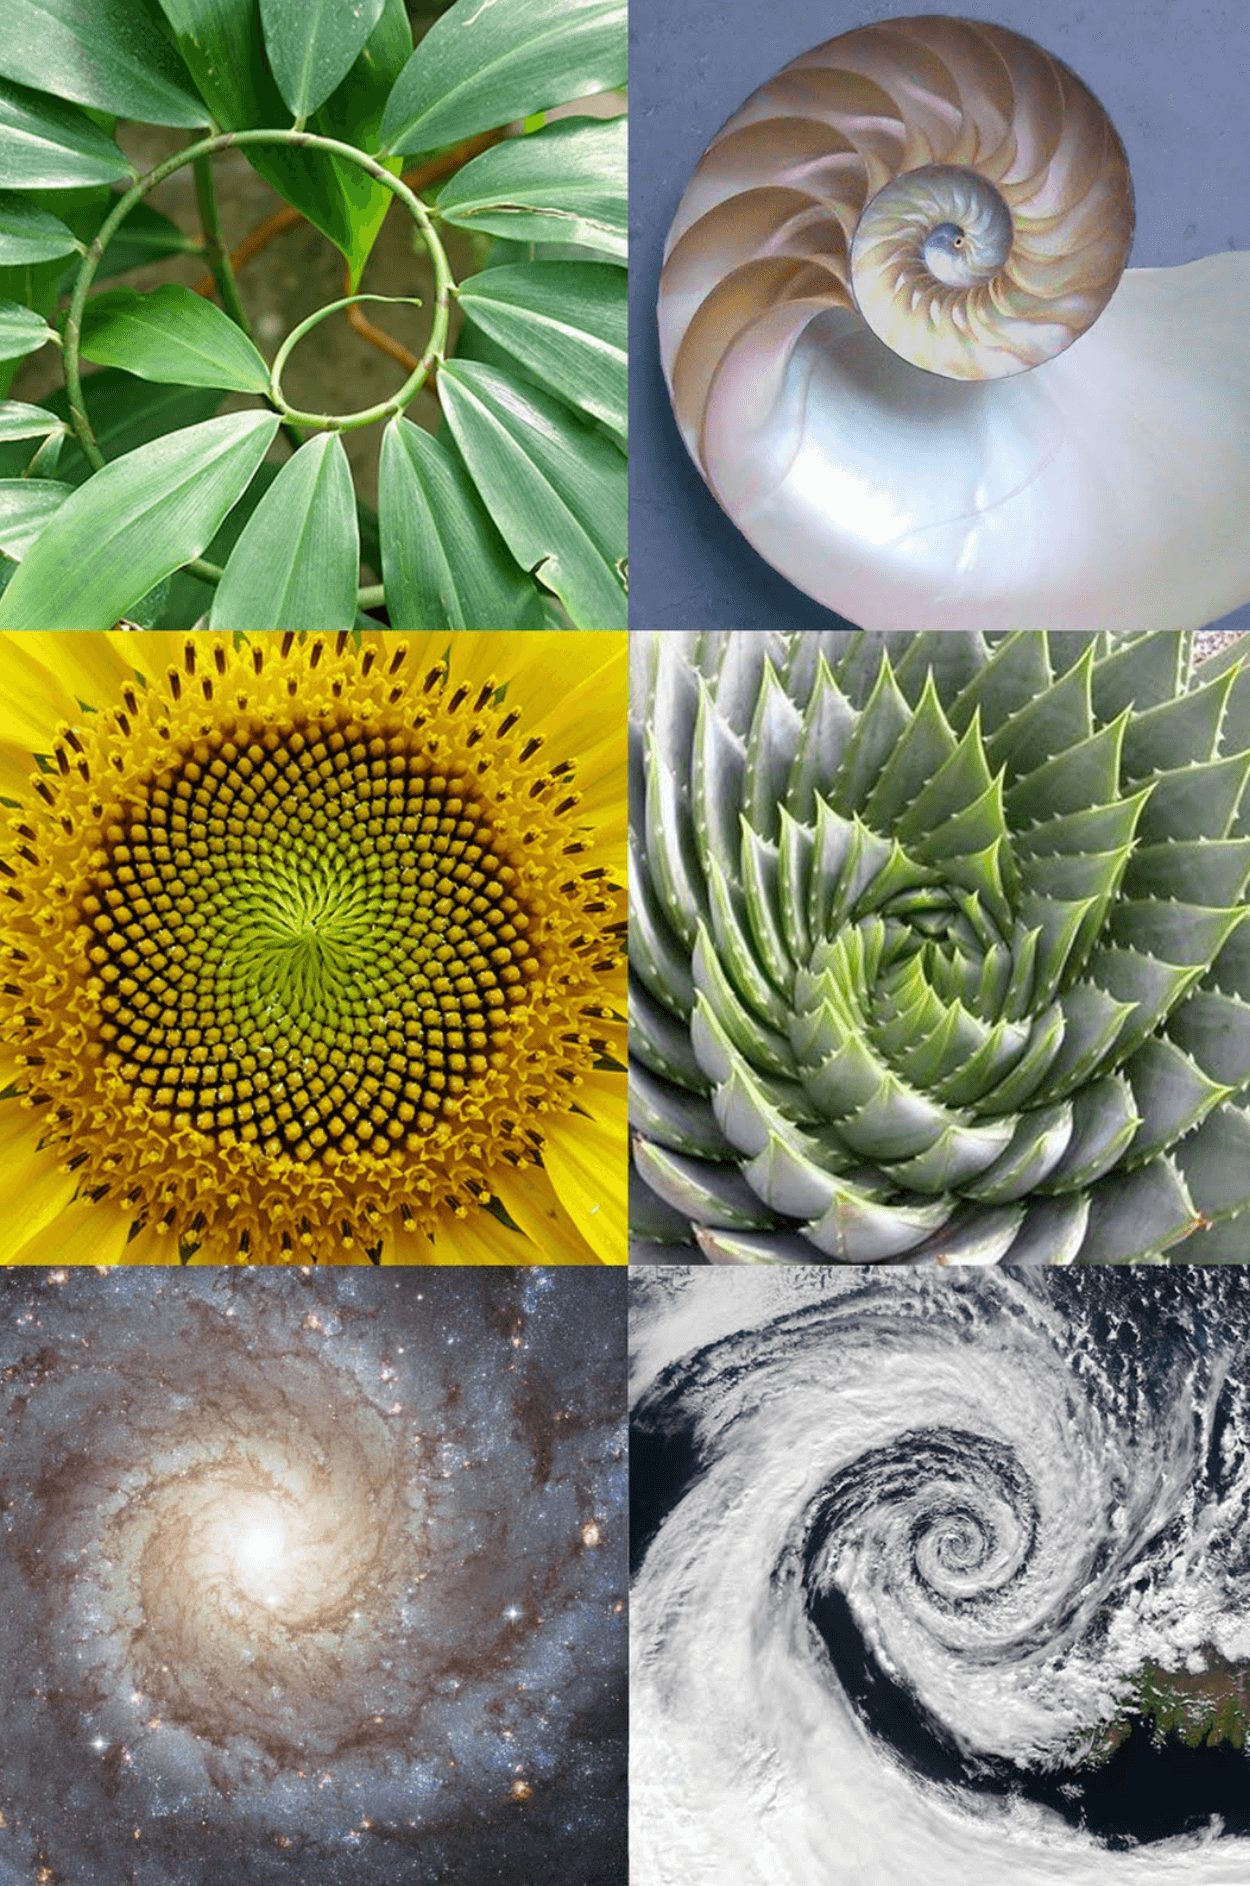 A collage of different spirals found in nature, such as a snail shell, the milky way galaxy, a cyclone.